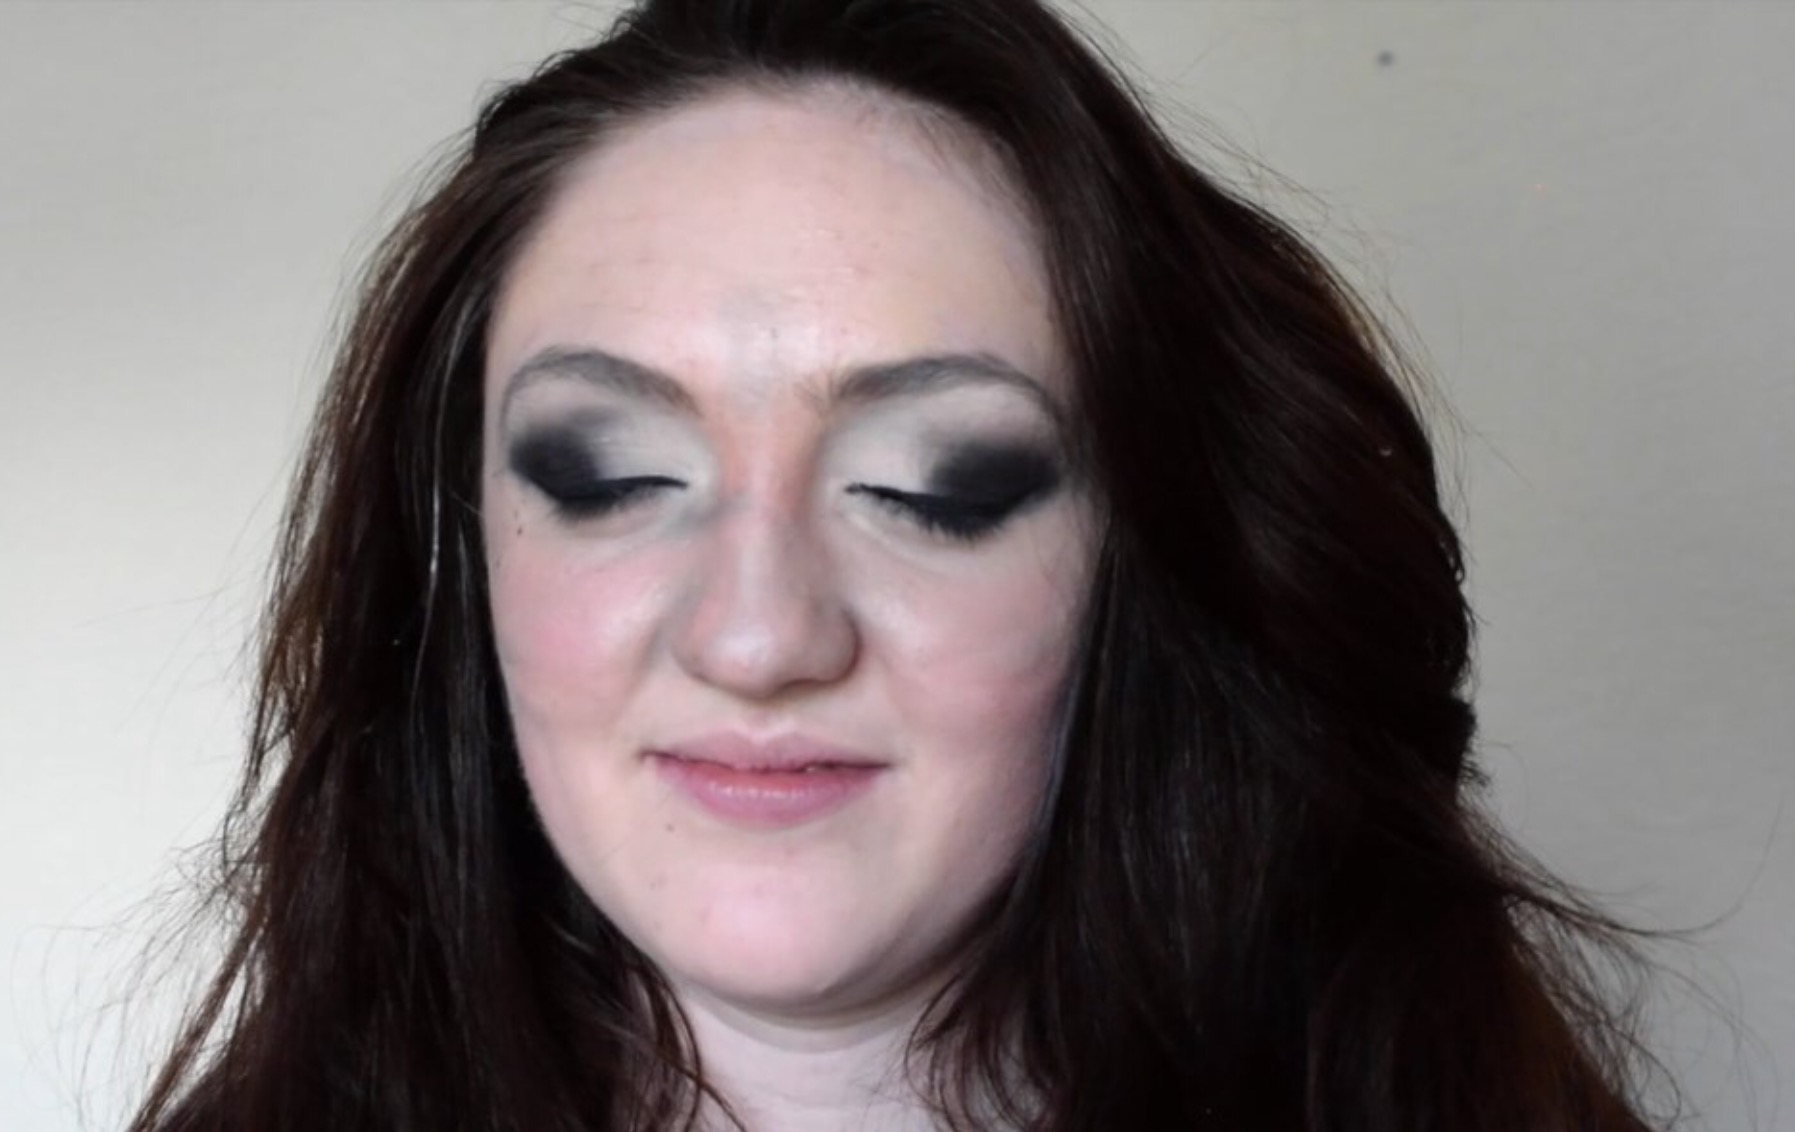 Charlotte : 'Basically, do not do your eye makeup while slightly 'under the influence.' You end up with a lot of regrets.'